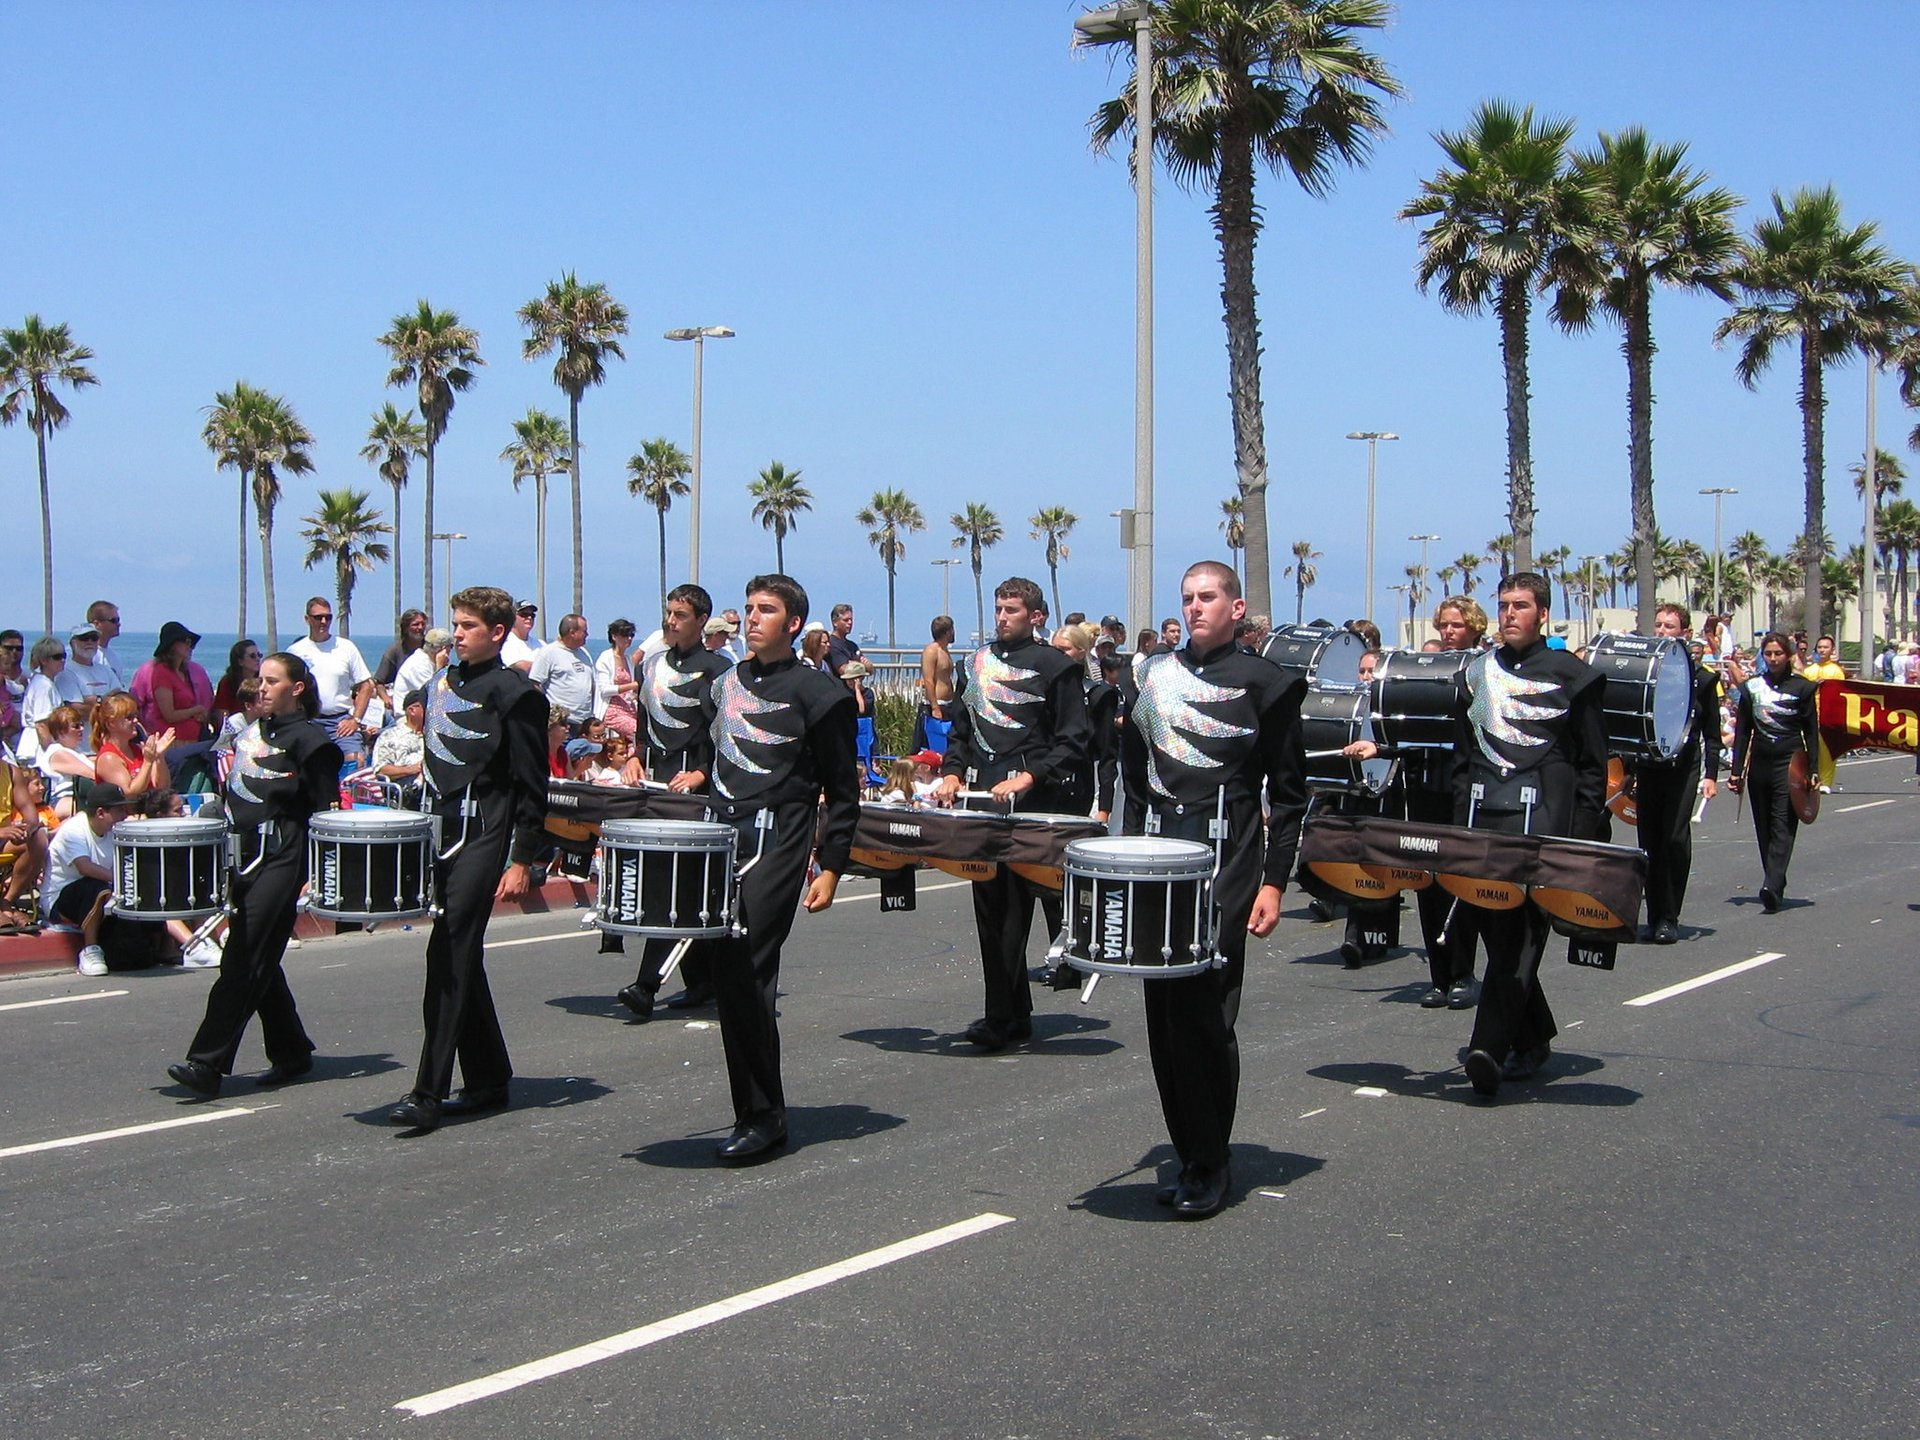 Huntington Beach 4th of July Parade and Fireworks in Huntington Beach, CA 2020 - Best Time